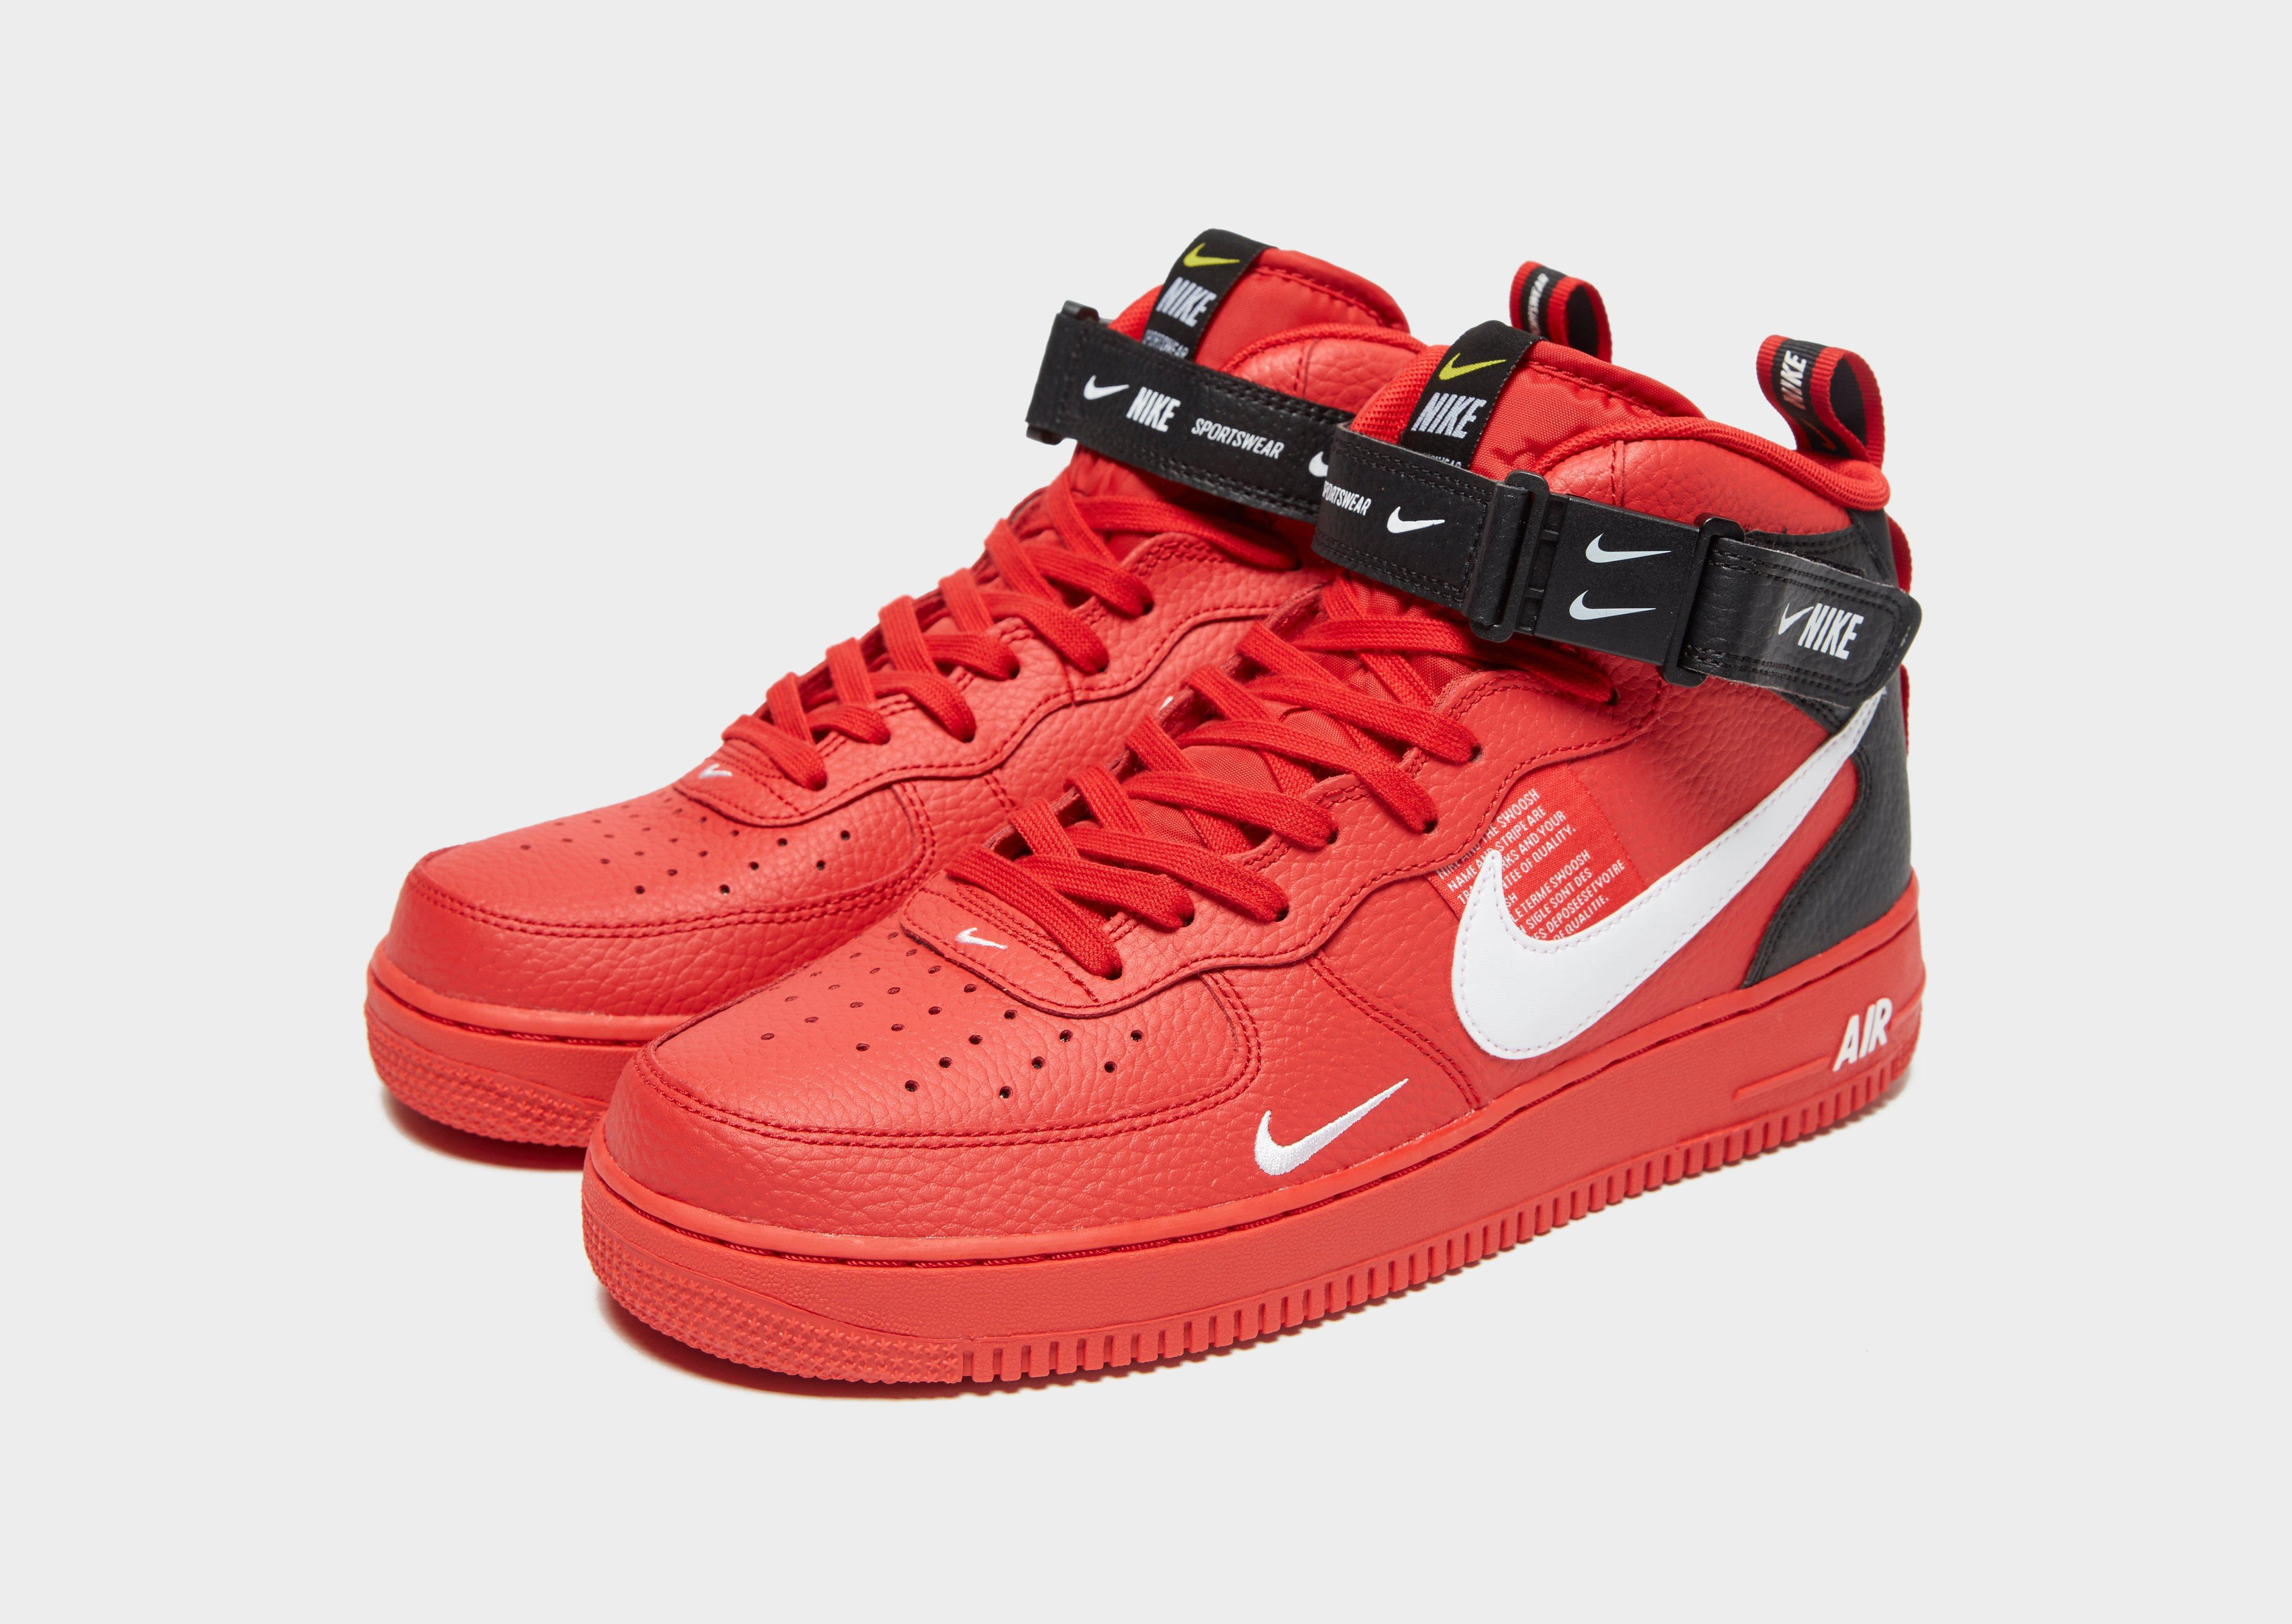 Nike Air Force 1 Mid 07 Lv8 in Red